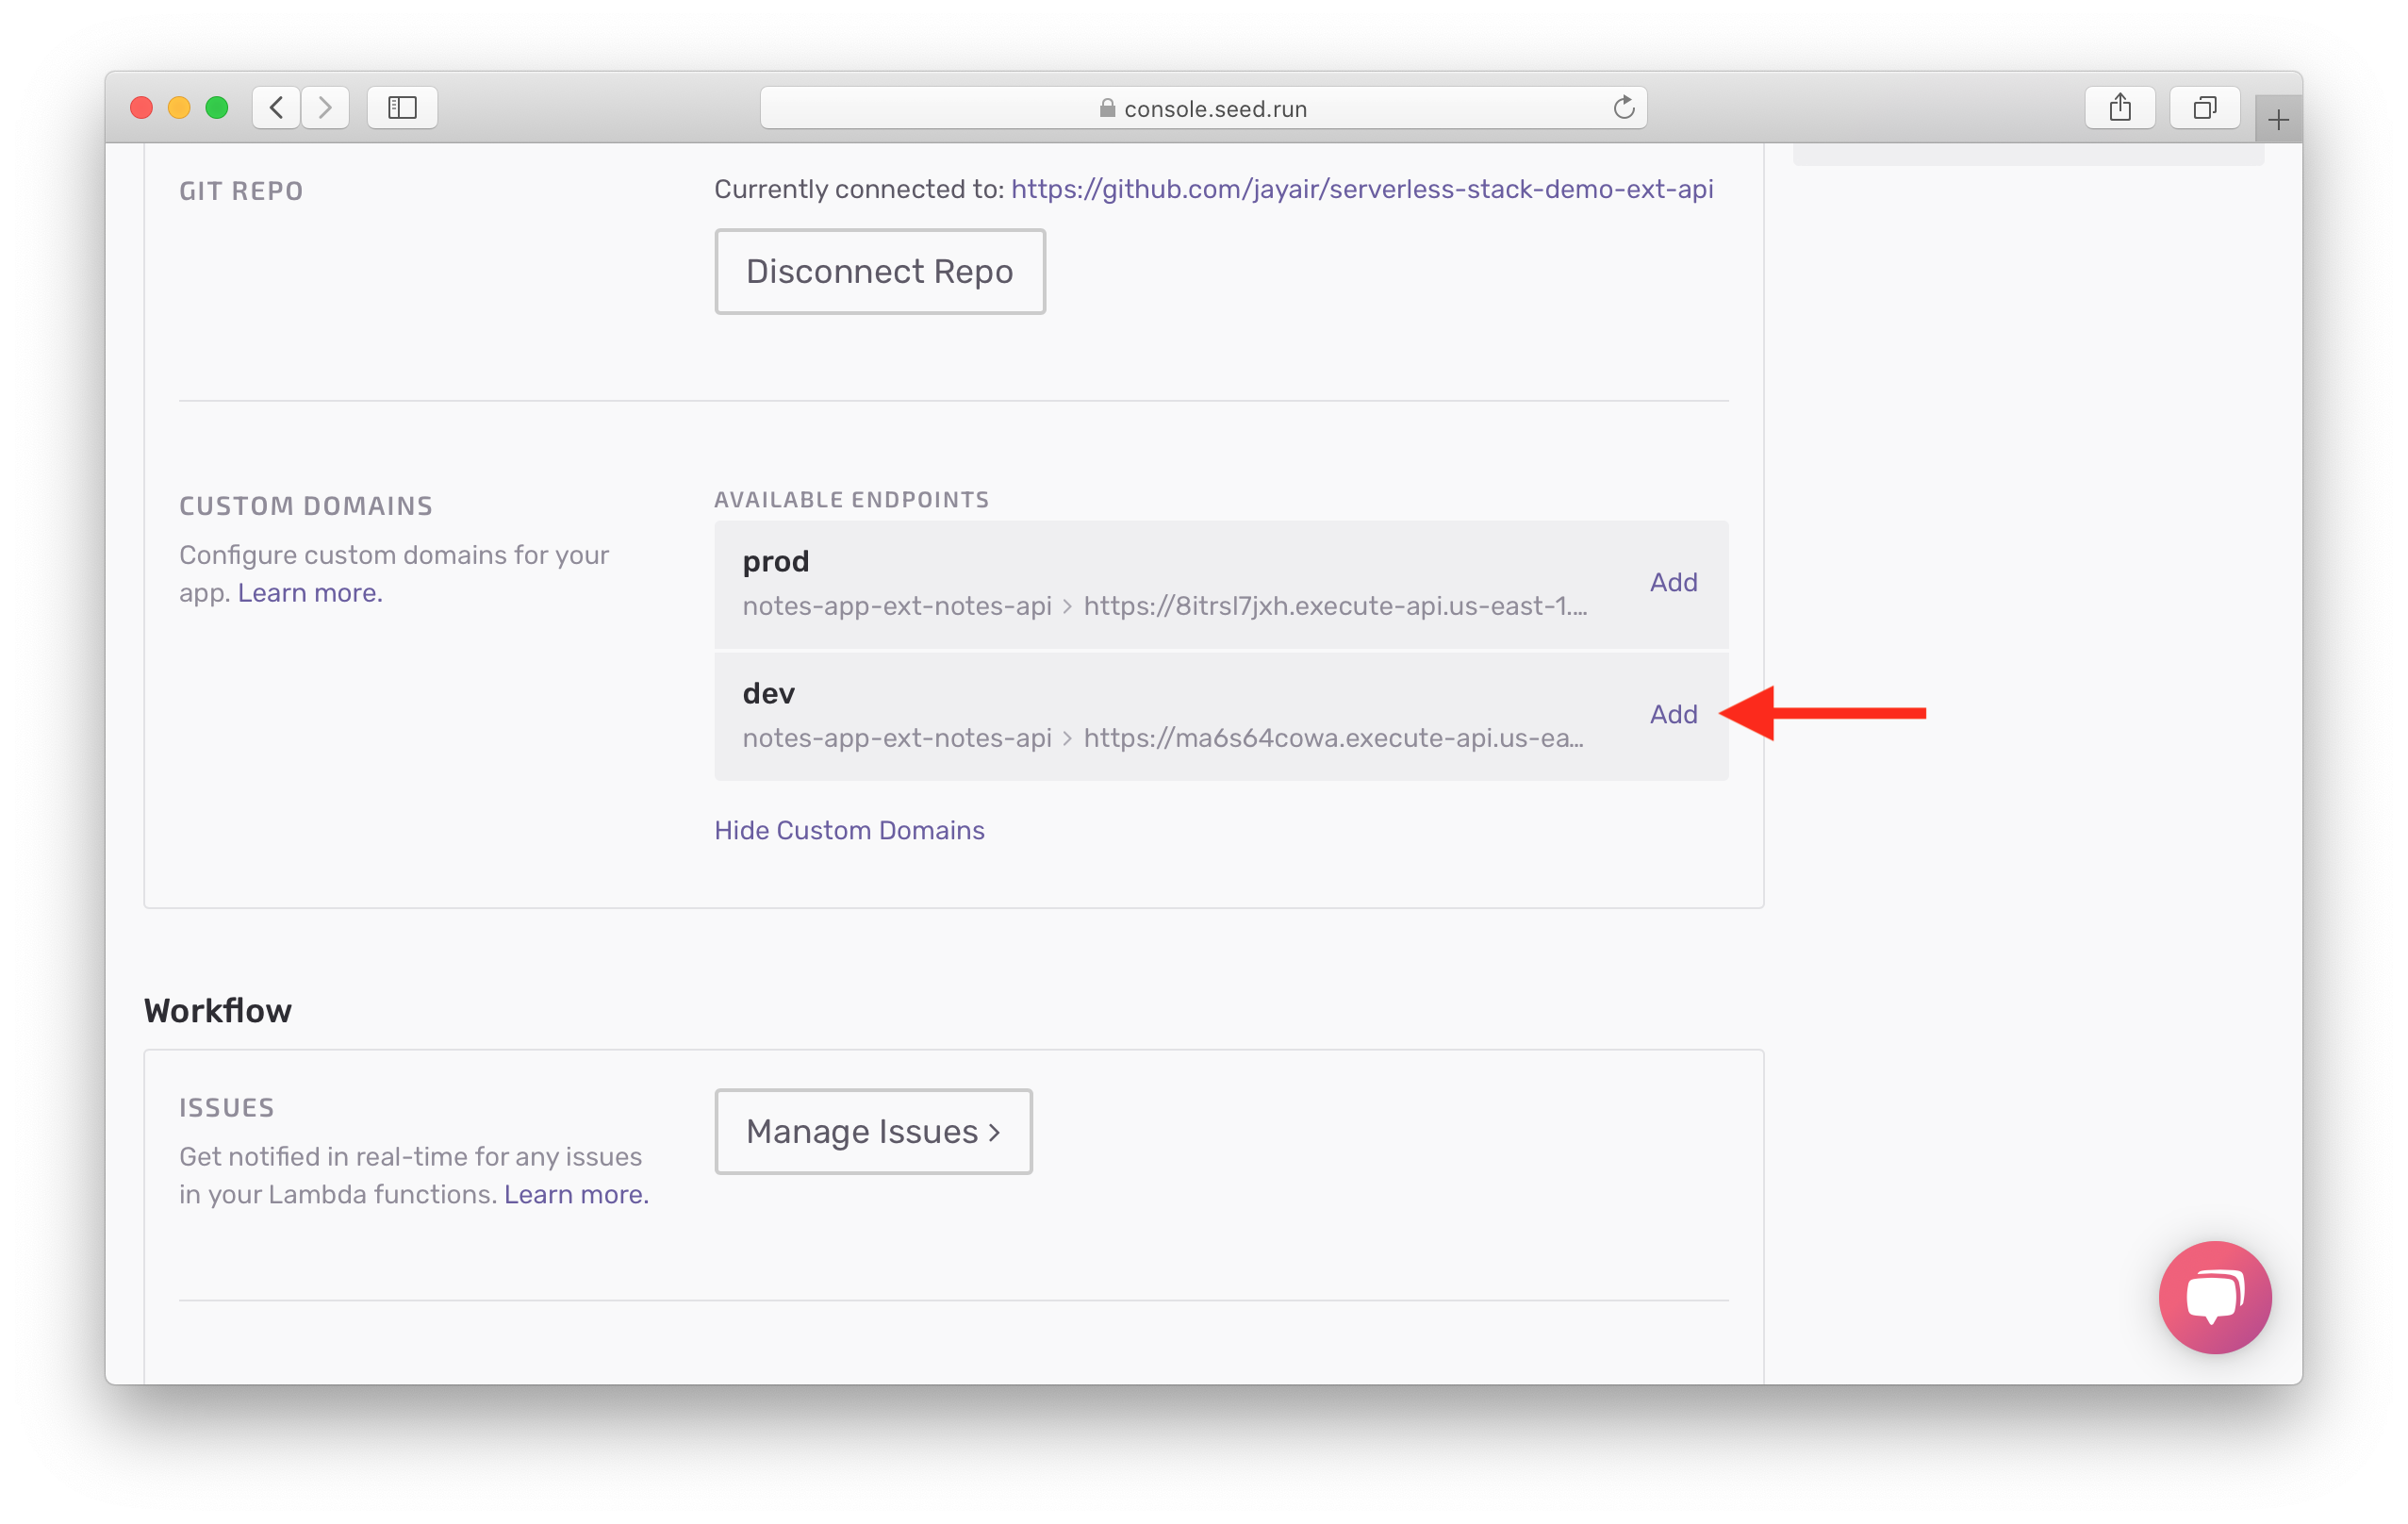 Select Add domain for dev stage